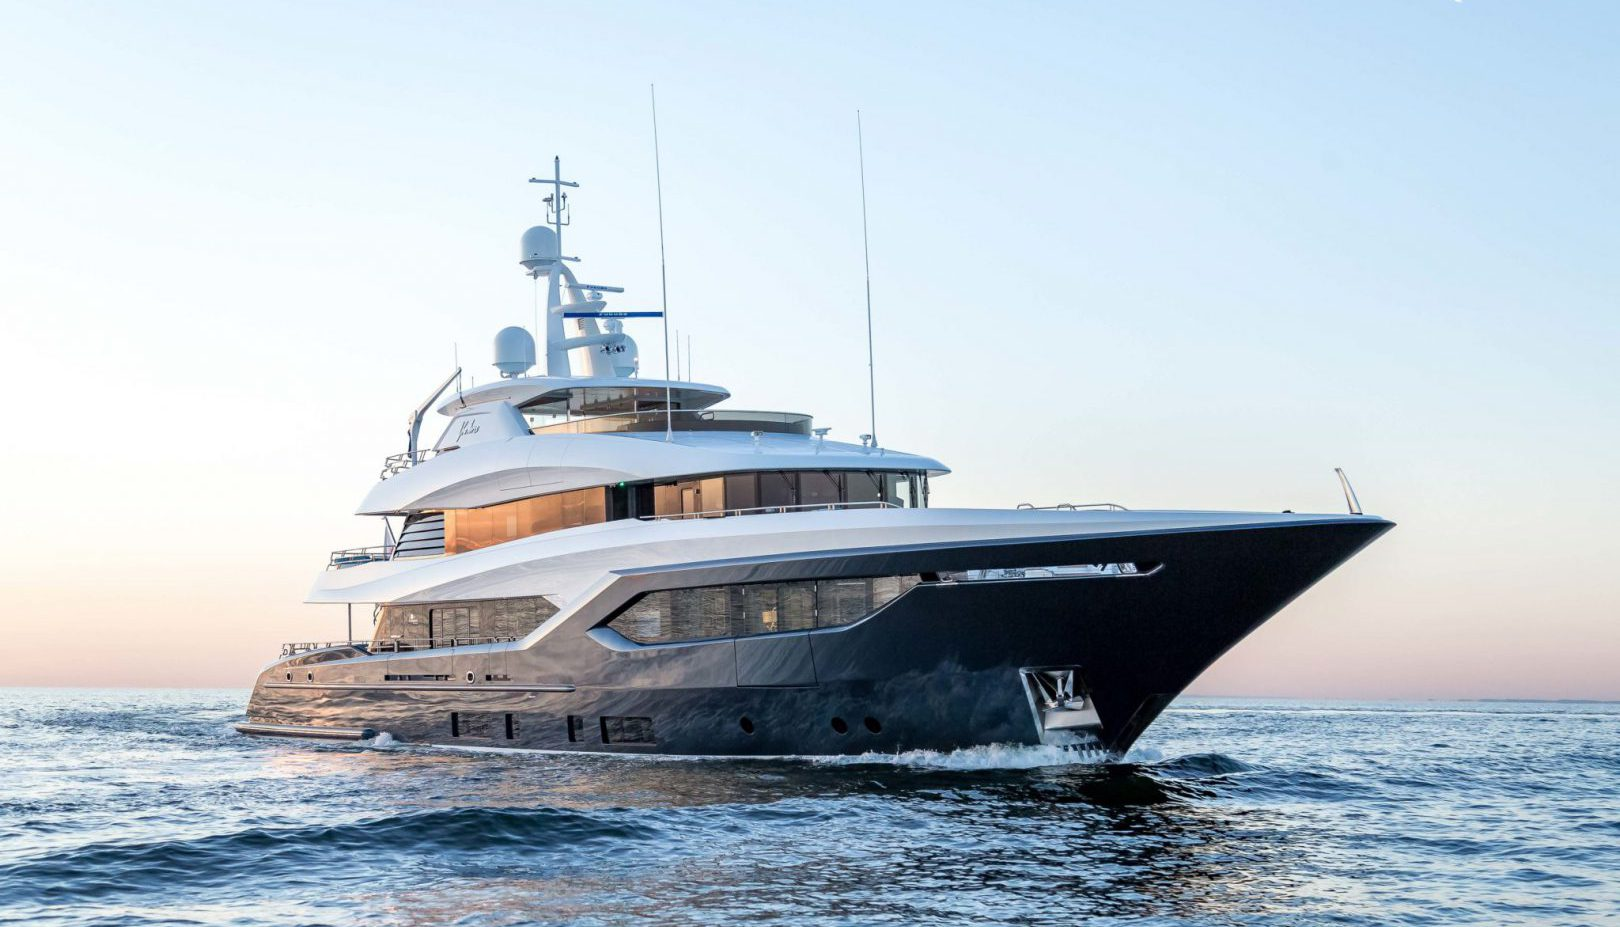 Viatoris is capable of a range of 4000nm with cruising speed of 10.5 knots